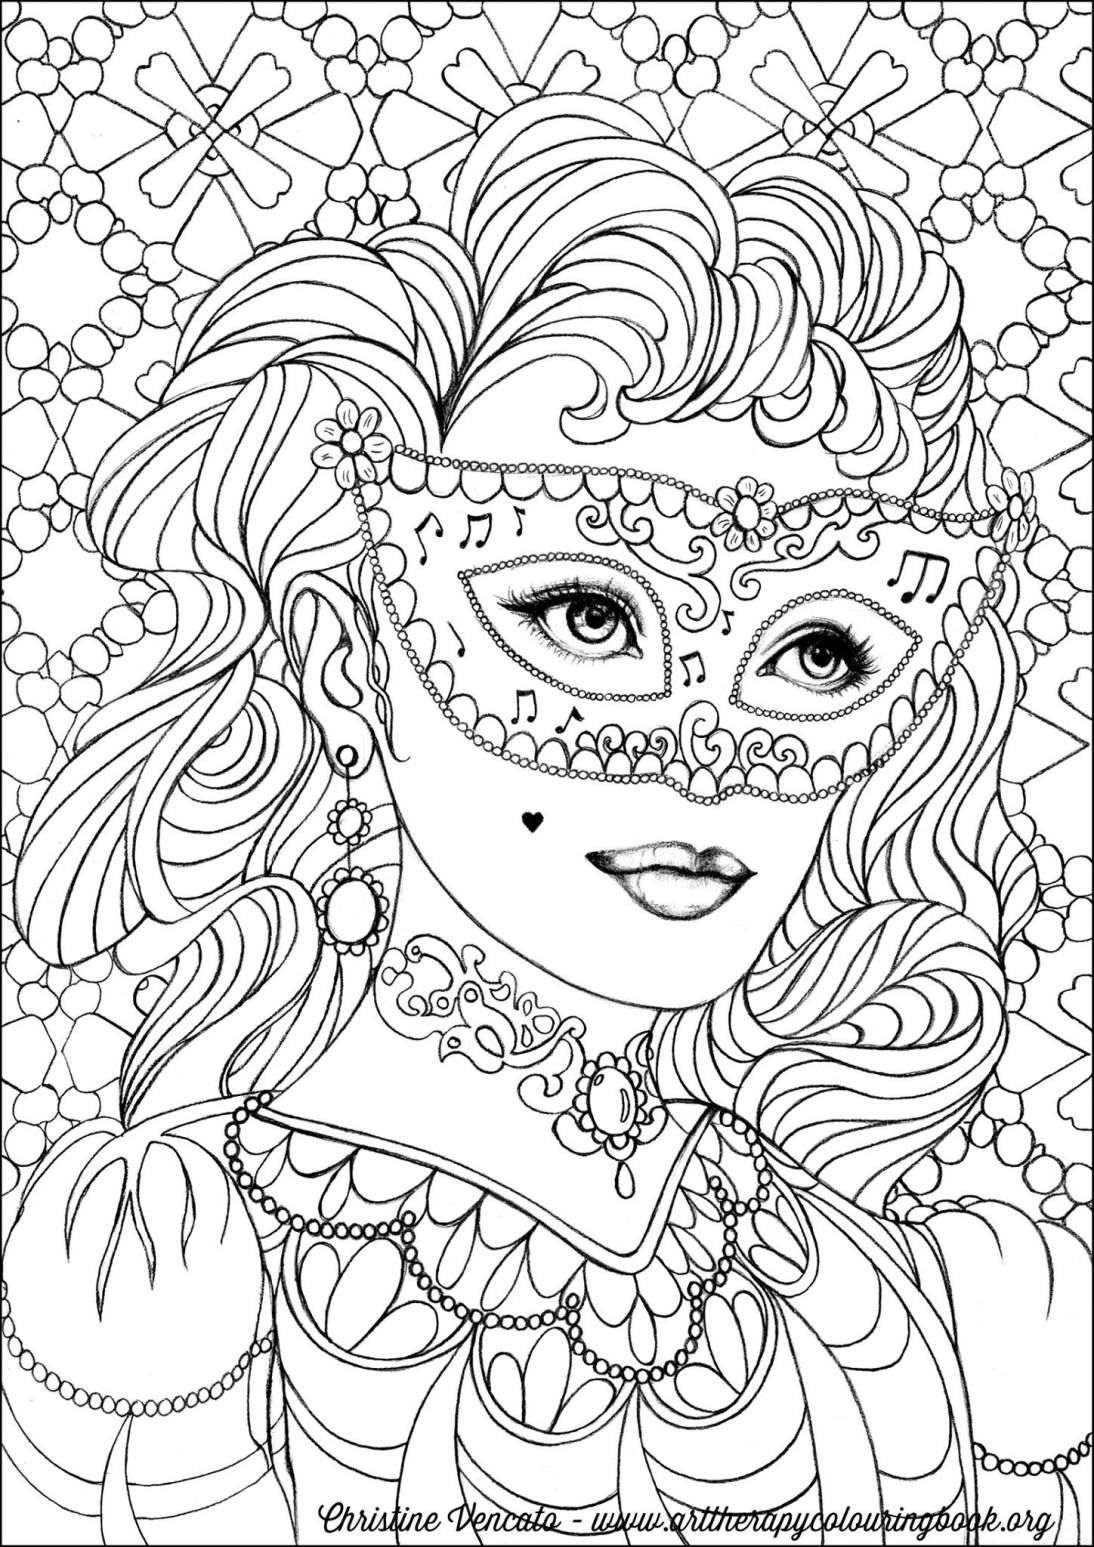 colouring pages for adults online free free adult floral coloring page the graphics fairy pages online colouring for adults free